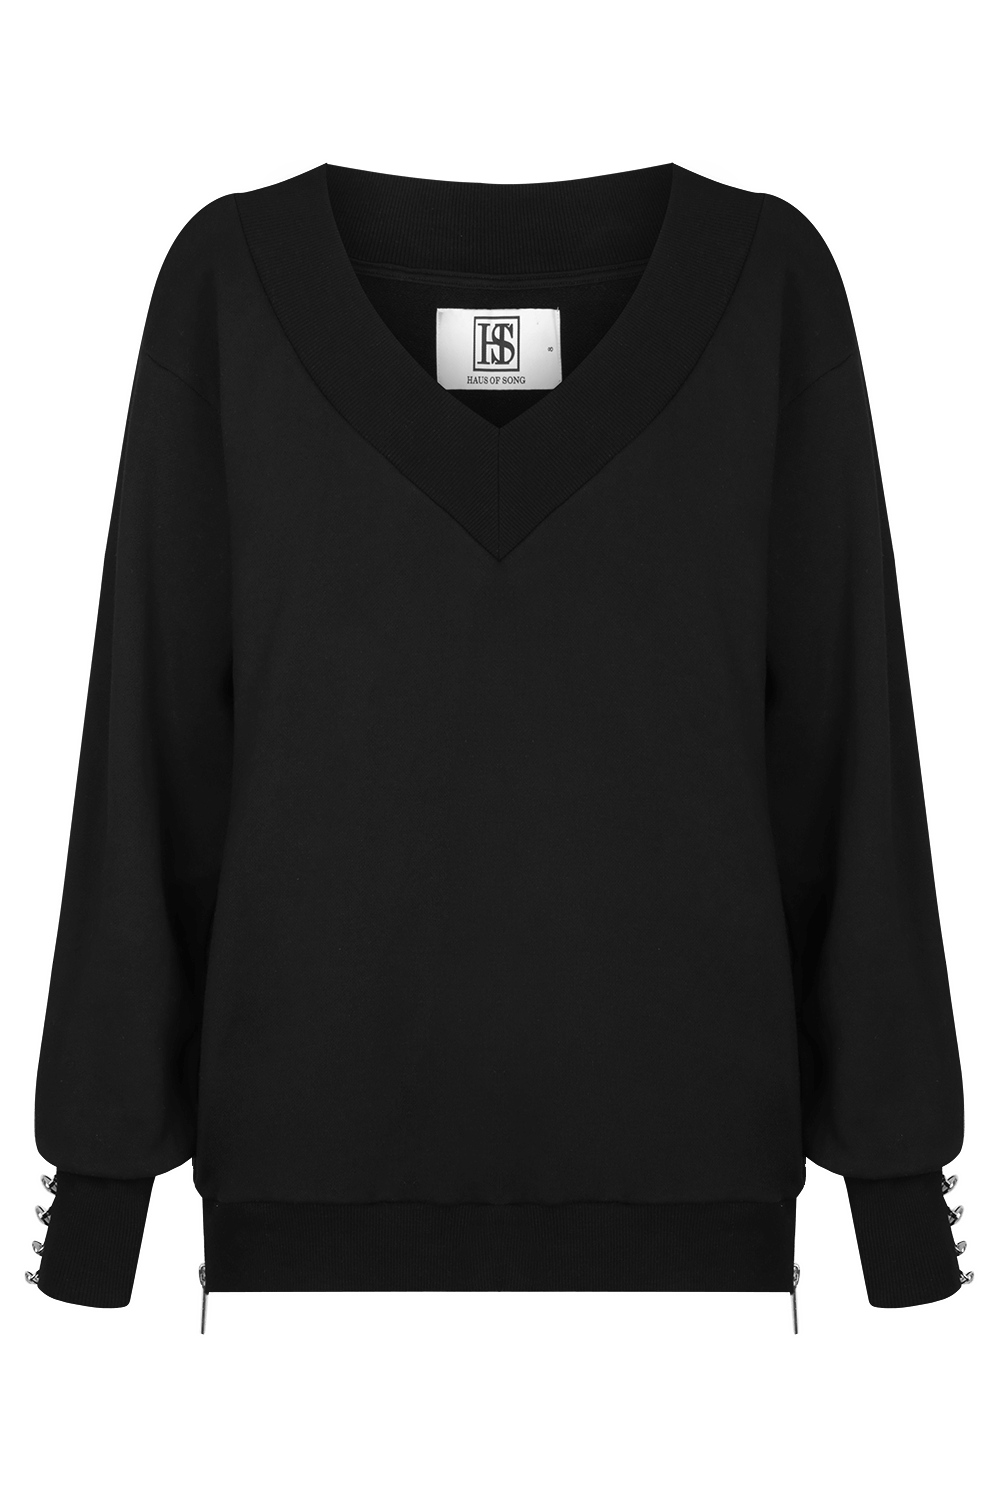 OPEN SIGHT Sweatshirt - BLK/PLTNM | HAUS OF SONG